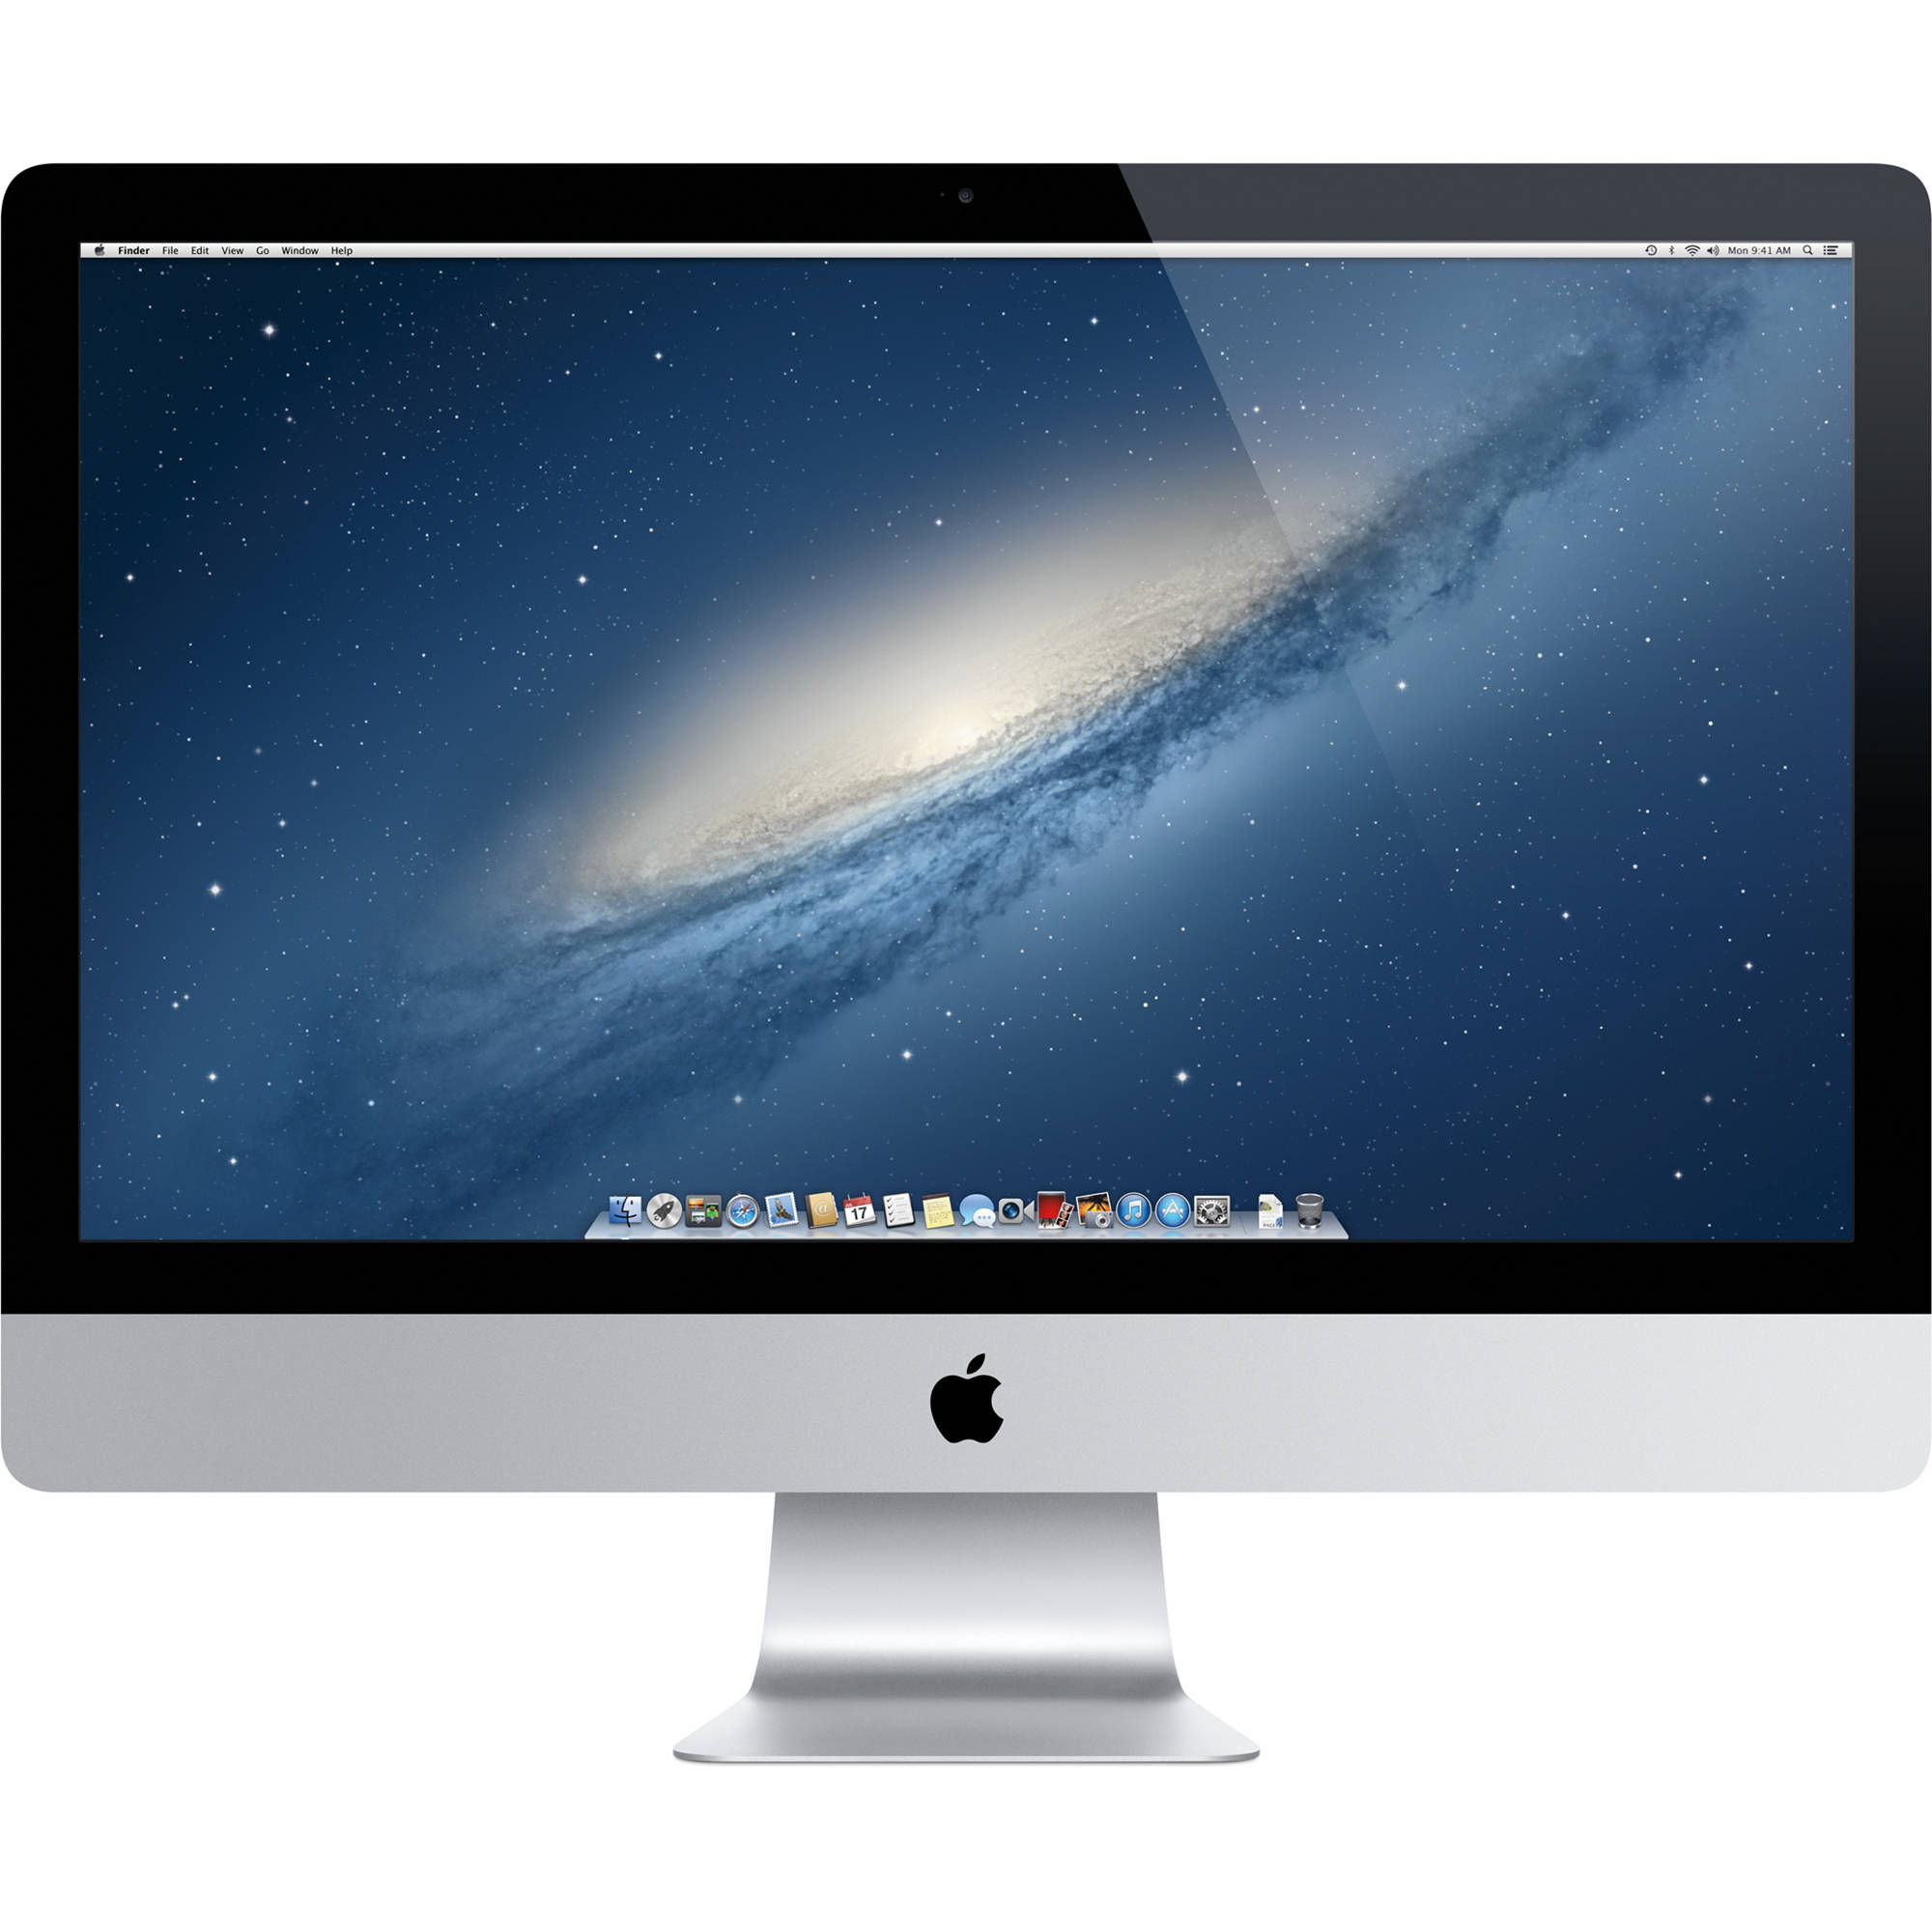 c product  REG apple mell a imac desktop computer